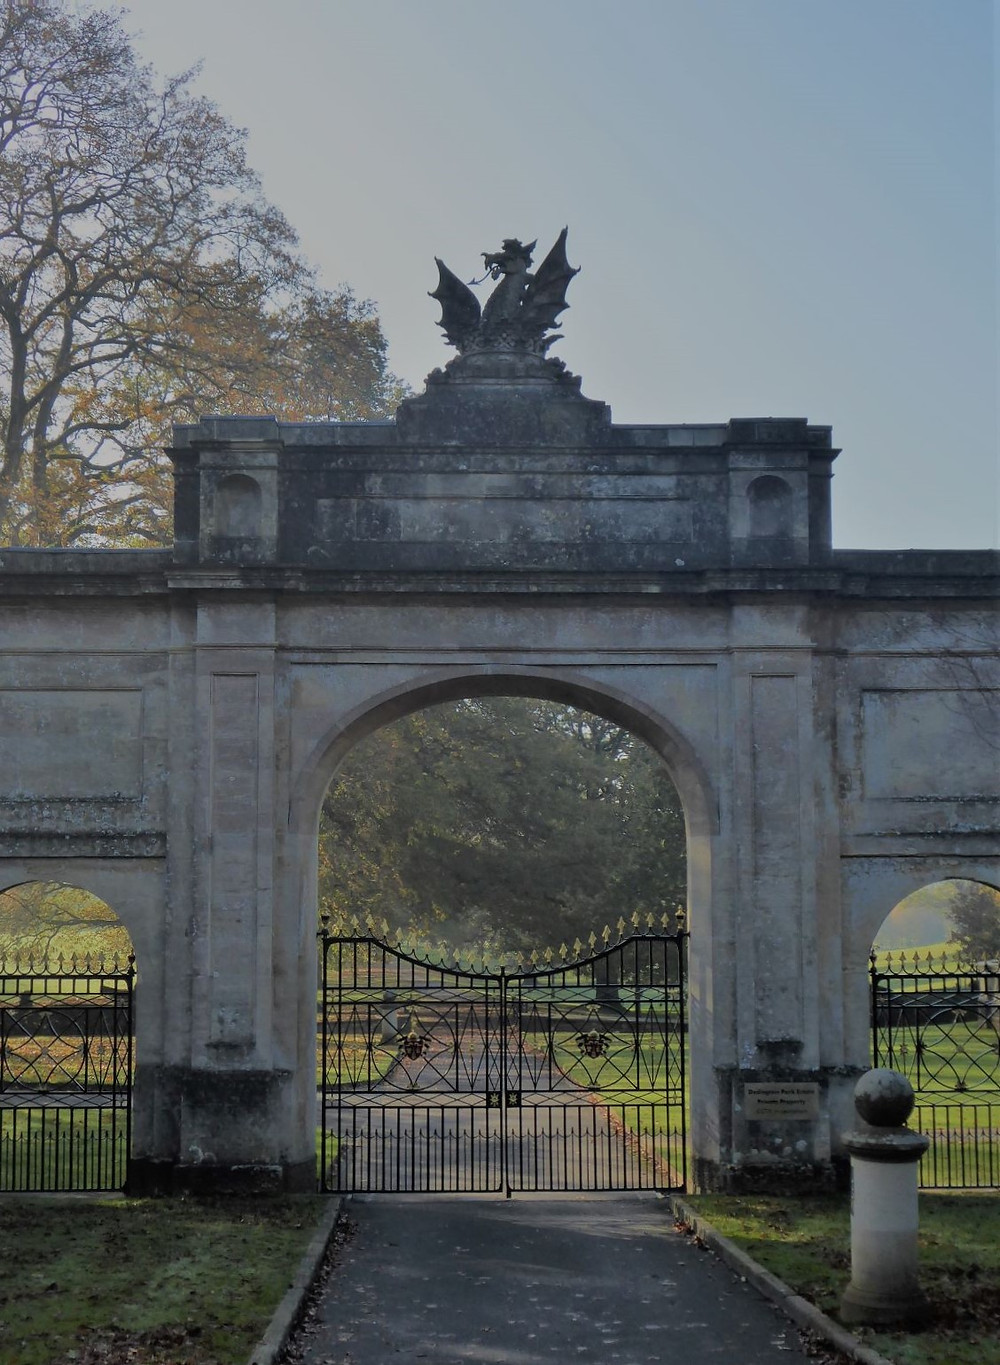 Stately Home gates closed